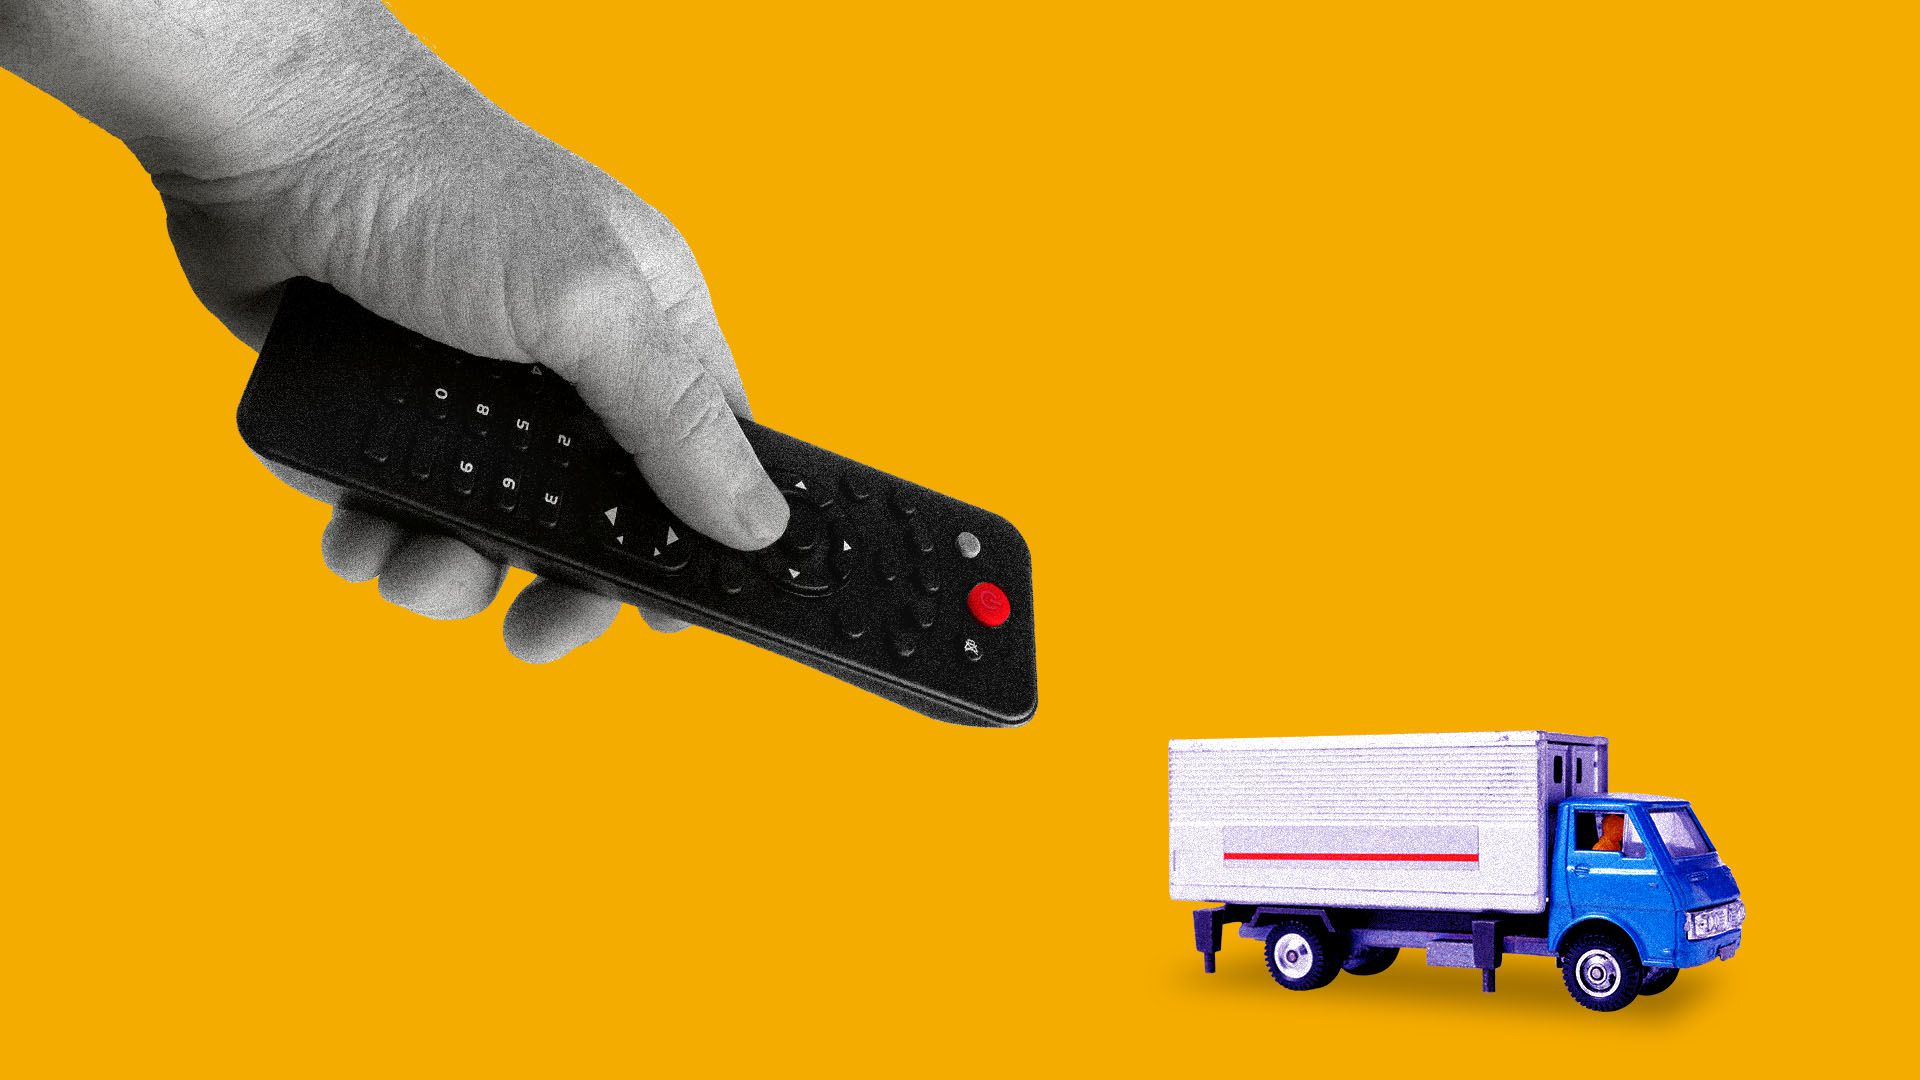 Illustration of hand with remote controlling a small truck